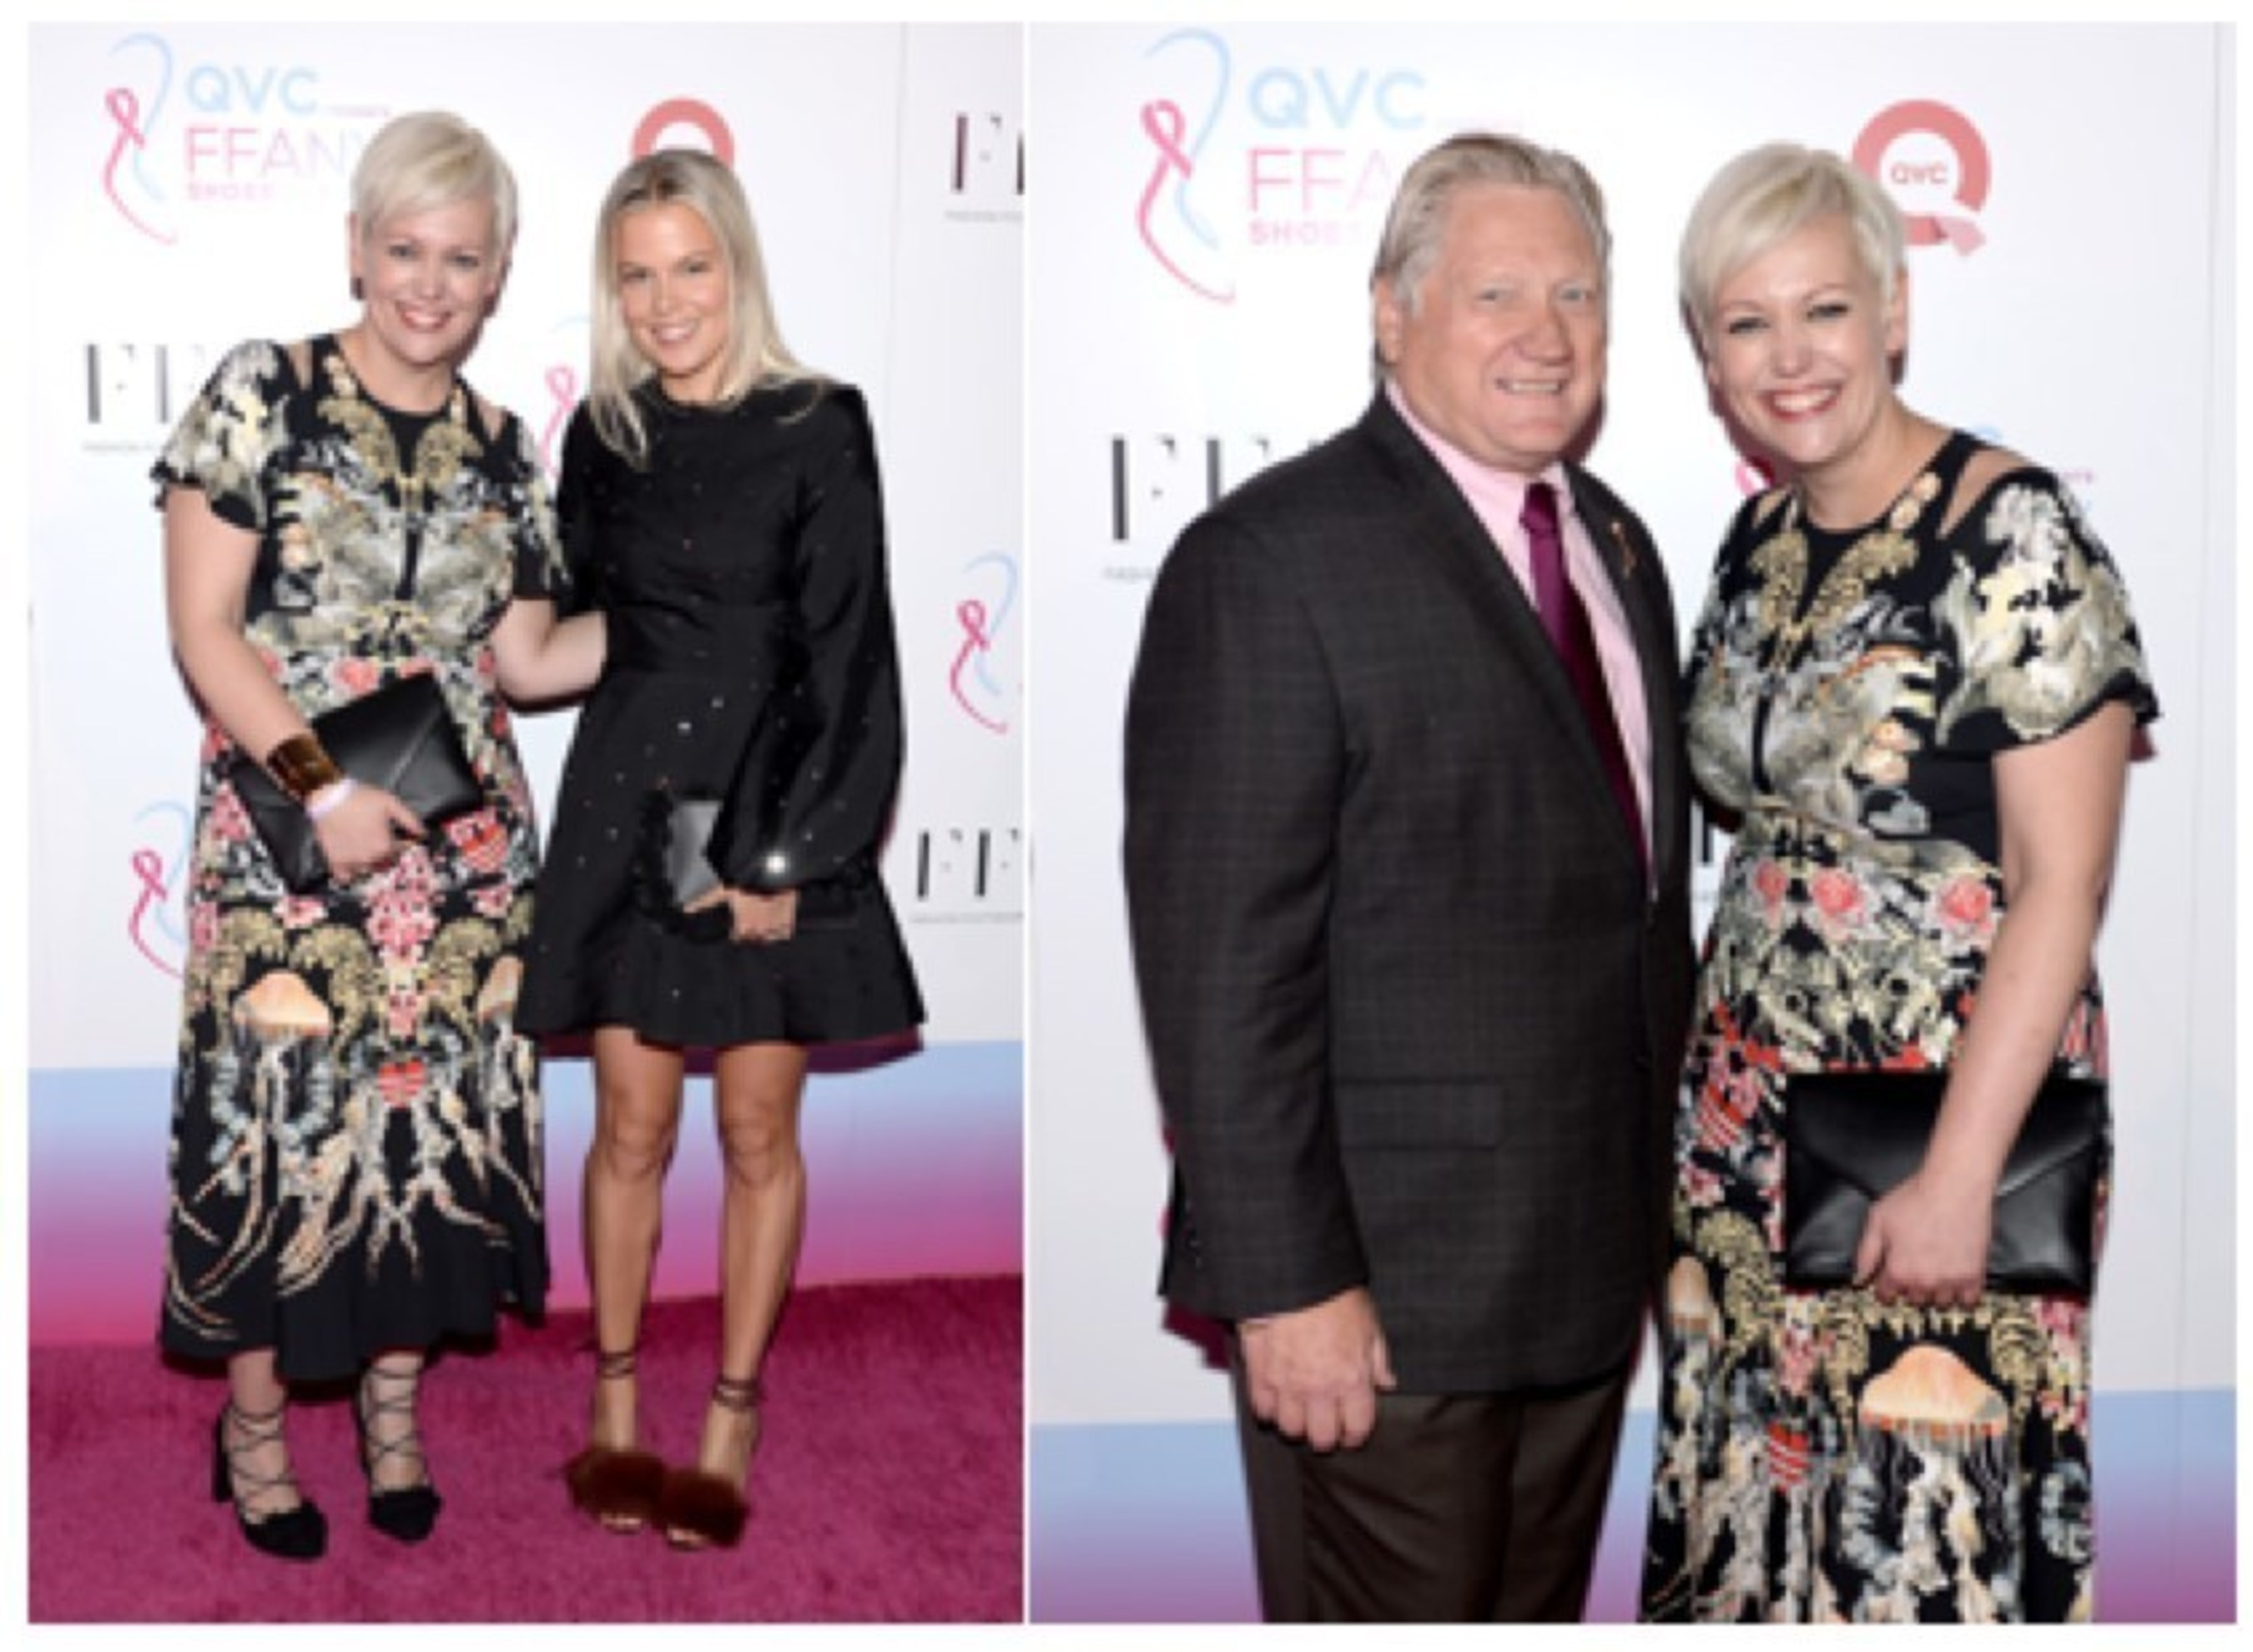 The 23rd Annual 'FFANY Shoes On Sale' Gala Event Celebrated SHOPBOP as Retailer of the Year Award Recipient